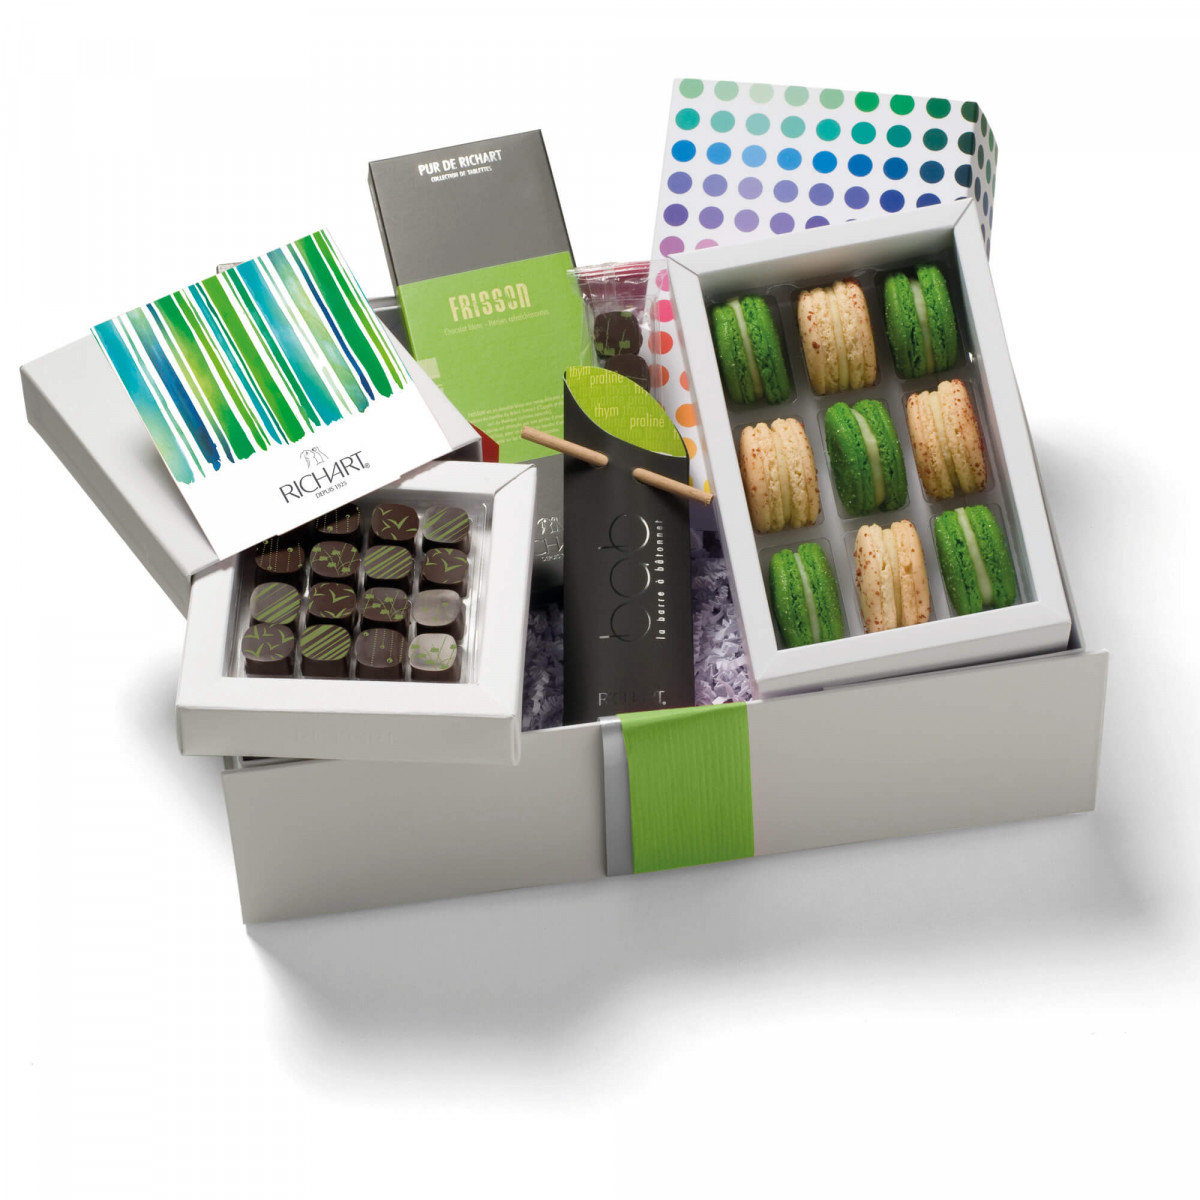 In the kingdom of the Herbal Chocolates and French macarons Gift basket